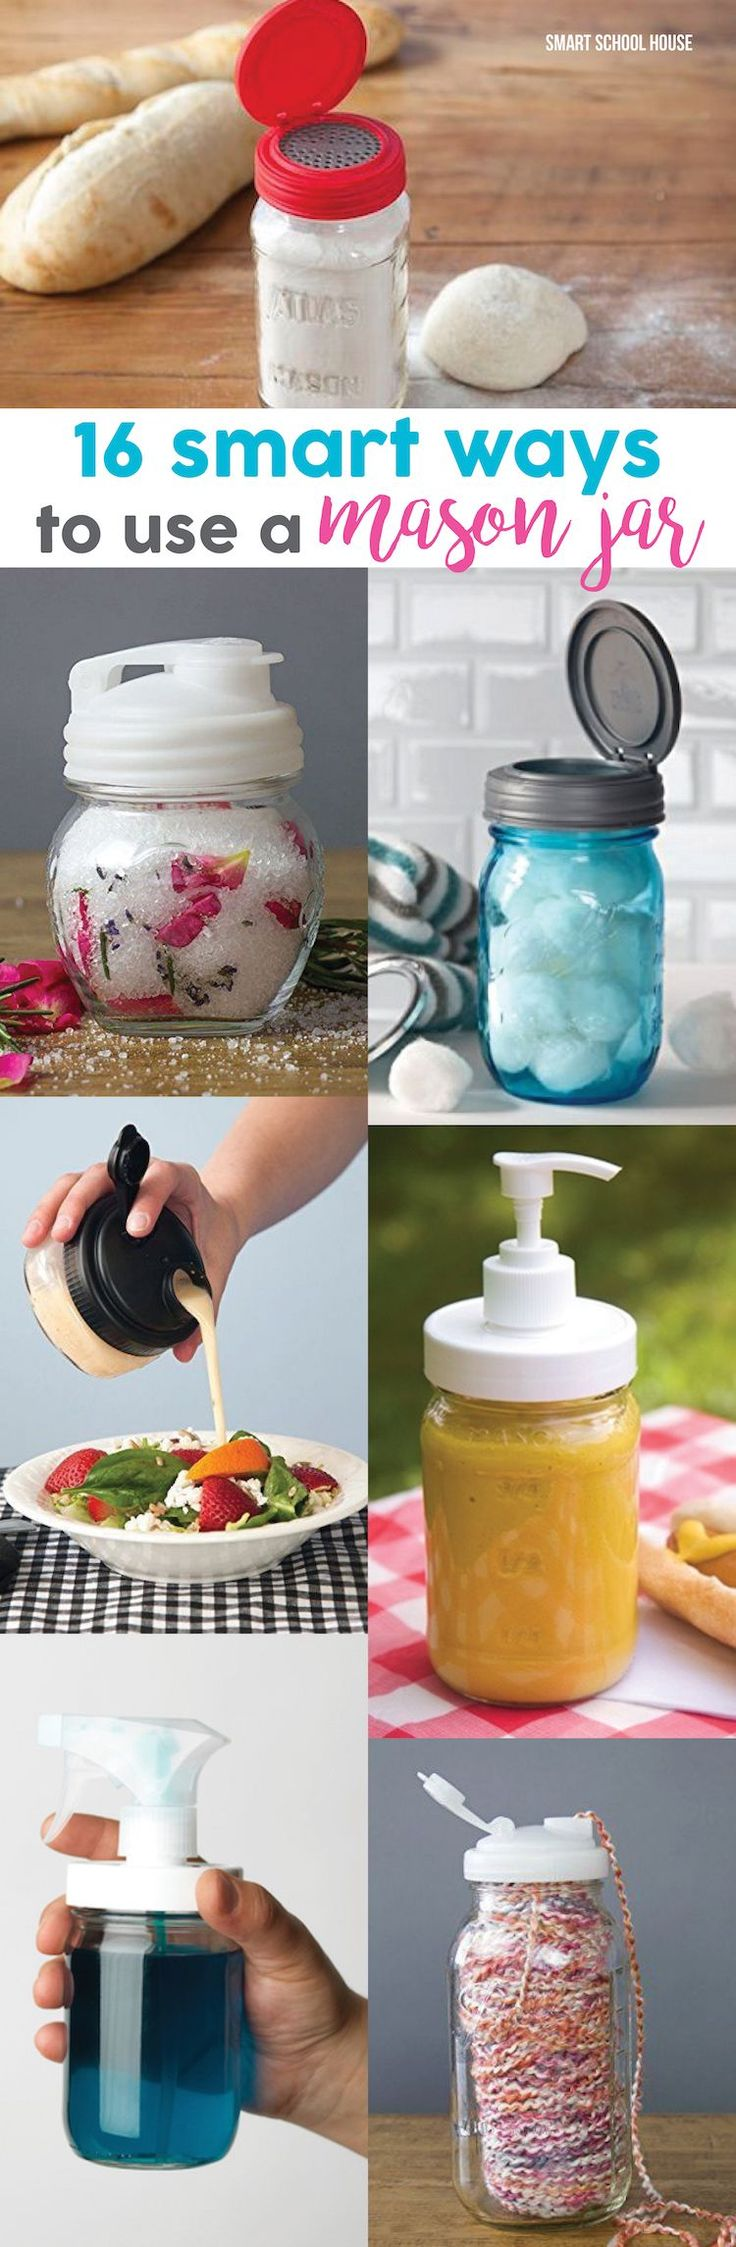 16 smart ways to use mason jars